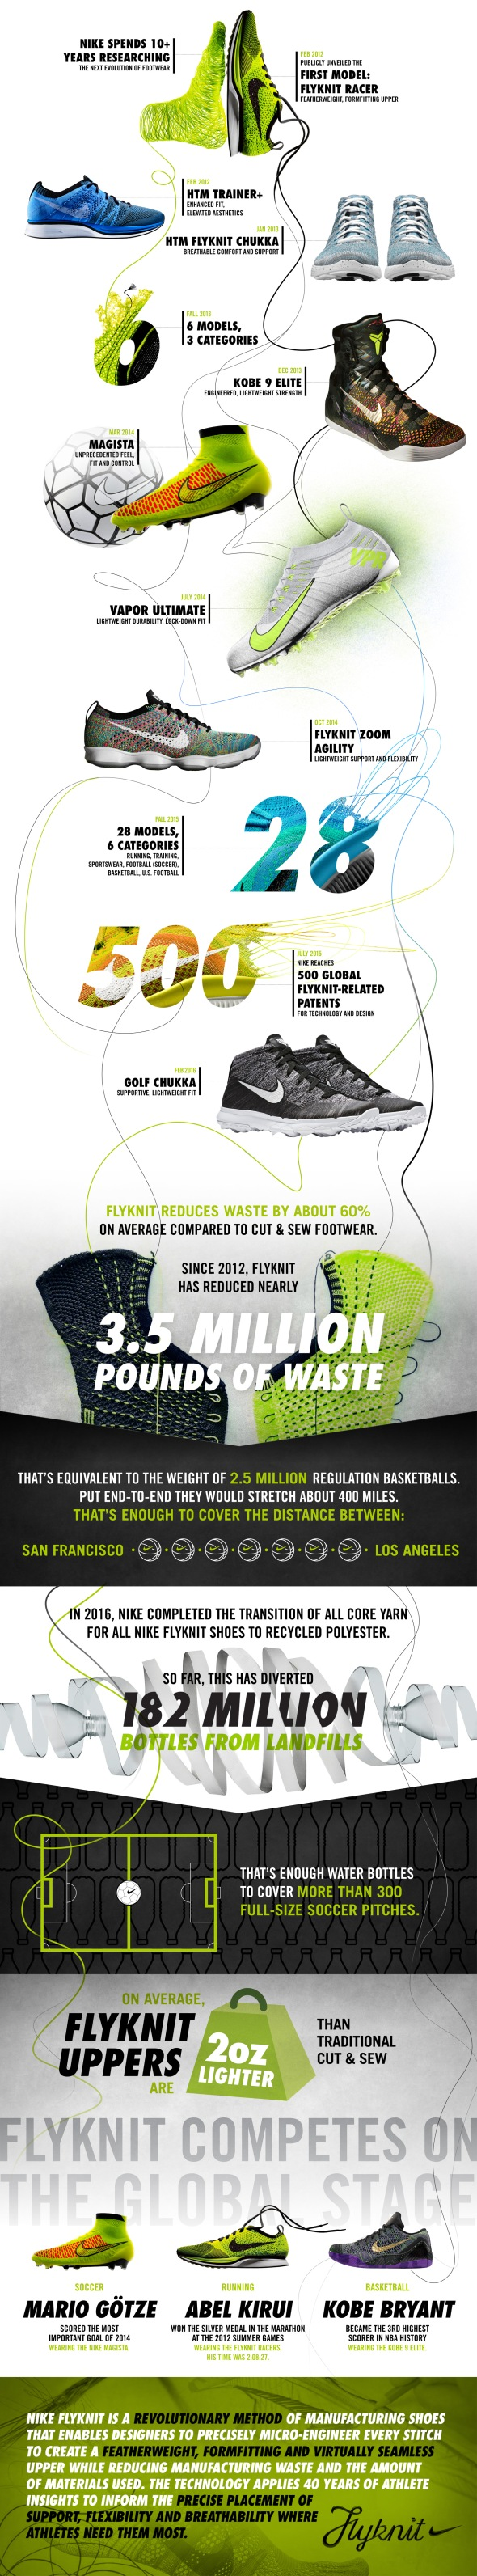 Four_Years_of_Flyknit_original